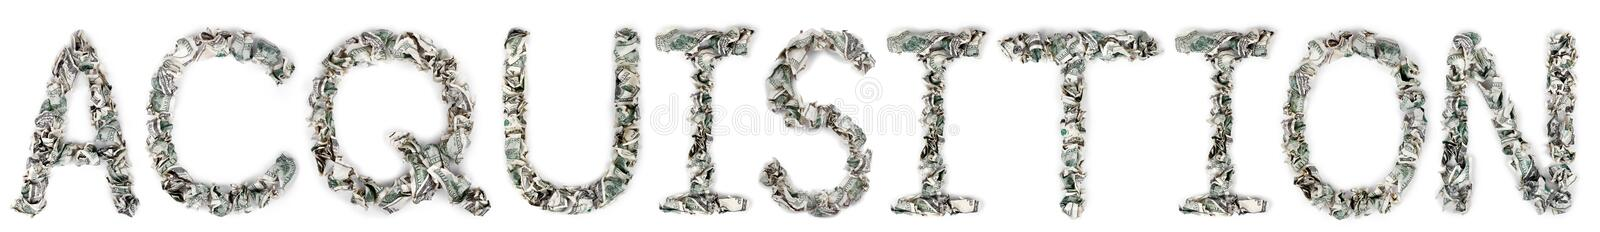 Download Acquisition - Crimped 100$ Bills Stock Photos - Image: 29762833